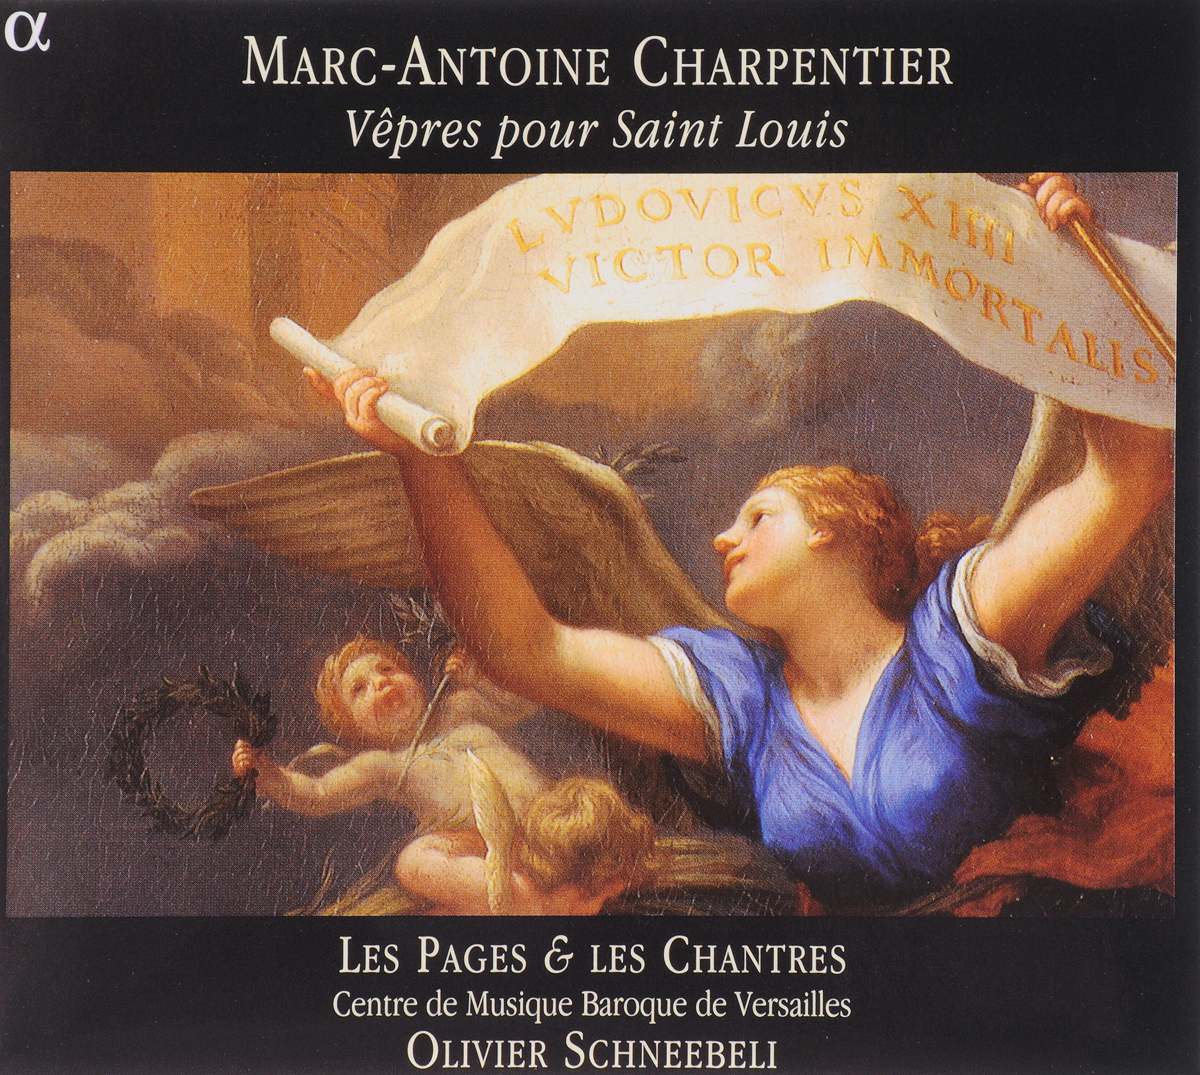 Zakazat.ru VARIOUS. CHARPENTIER, M.-A./VEPRES POUR SAINT LOUIS/CENTRE FOR BAROQUE MUSIC AT VERSAILLES/SCHNEEBELI, O.. 1